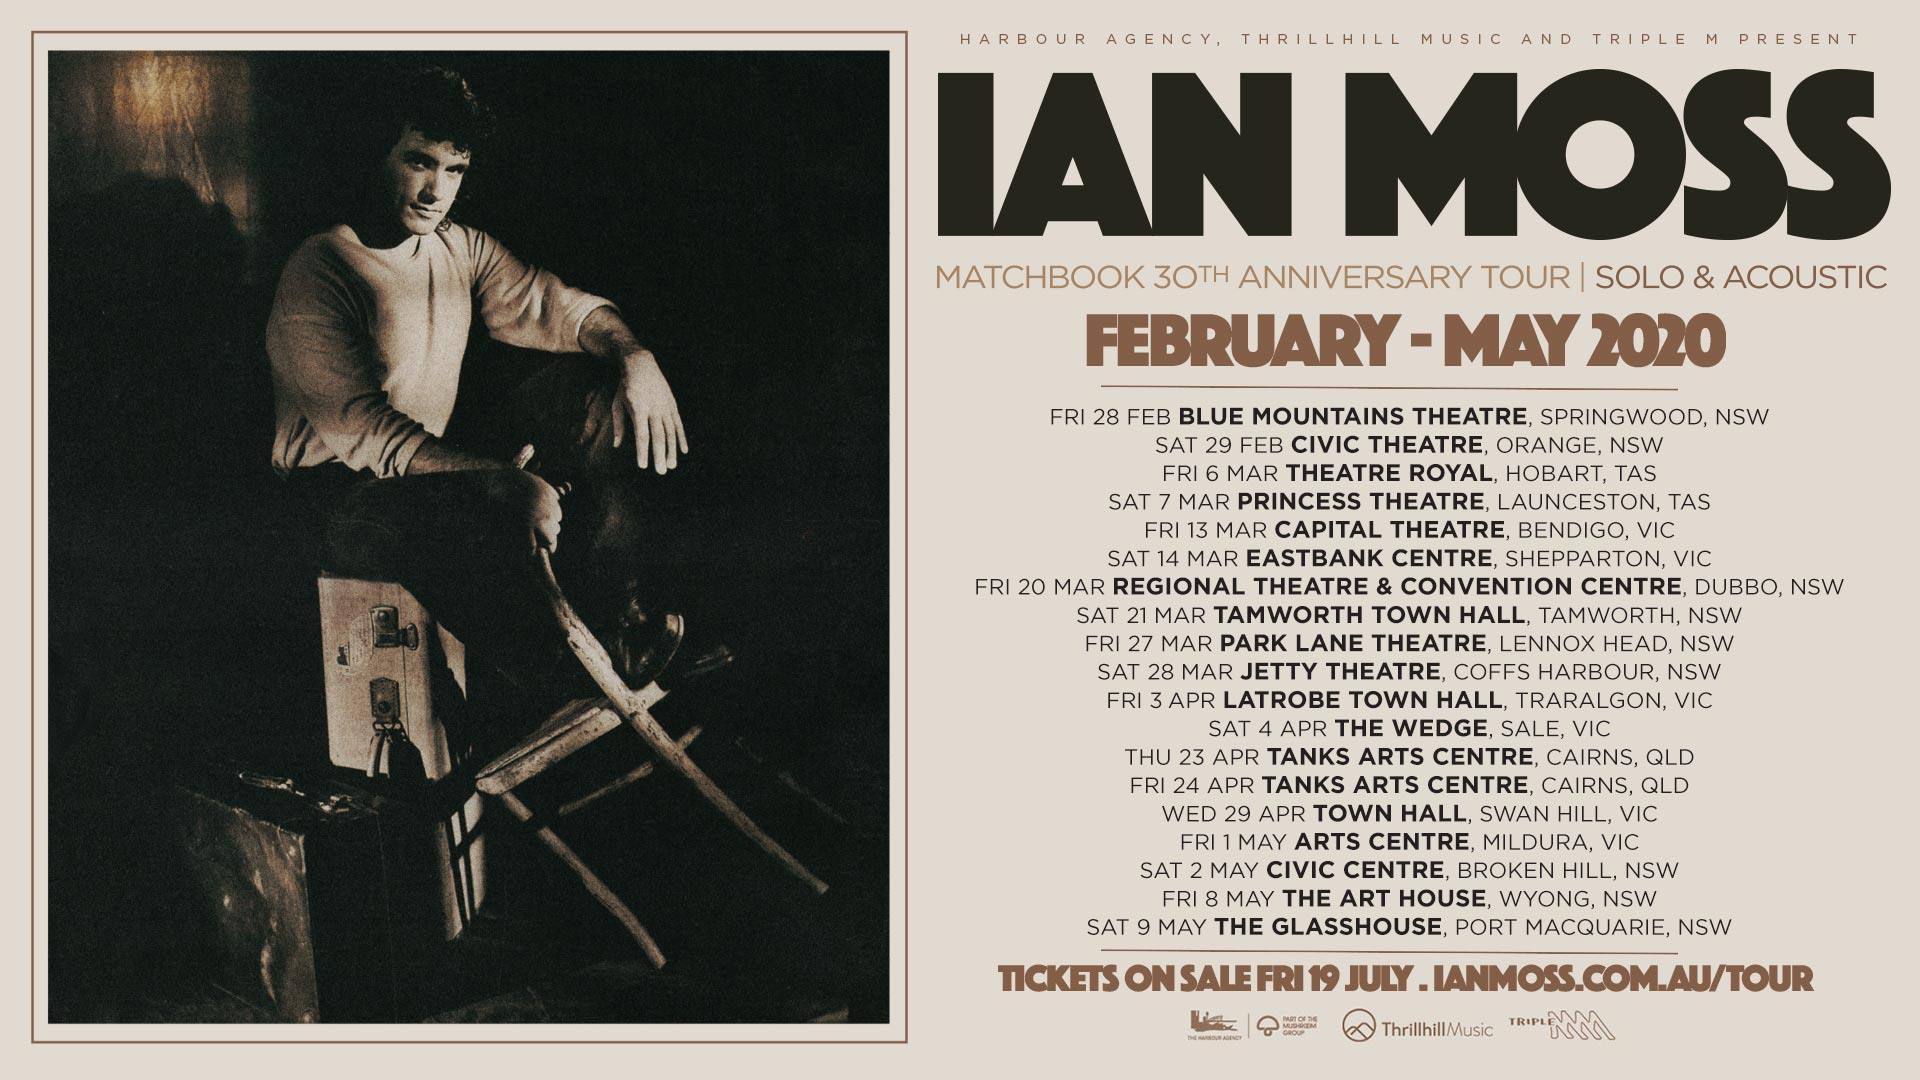 Ian Moss - Matchbook 30th Anniversary Tour. Solo & Acoustic